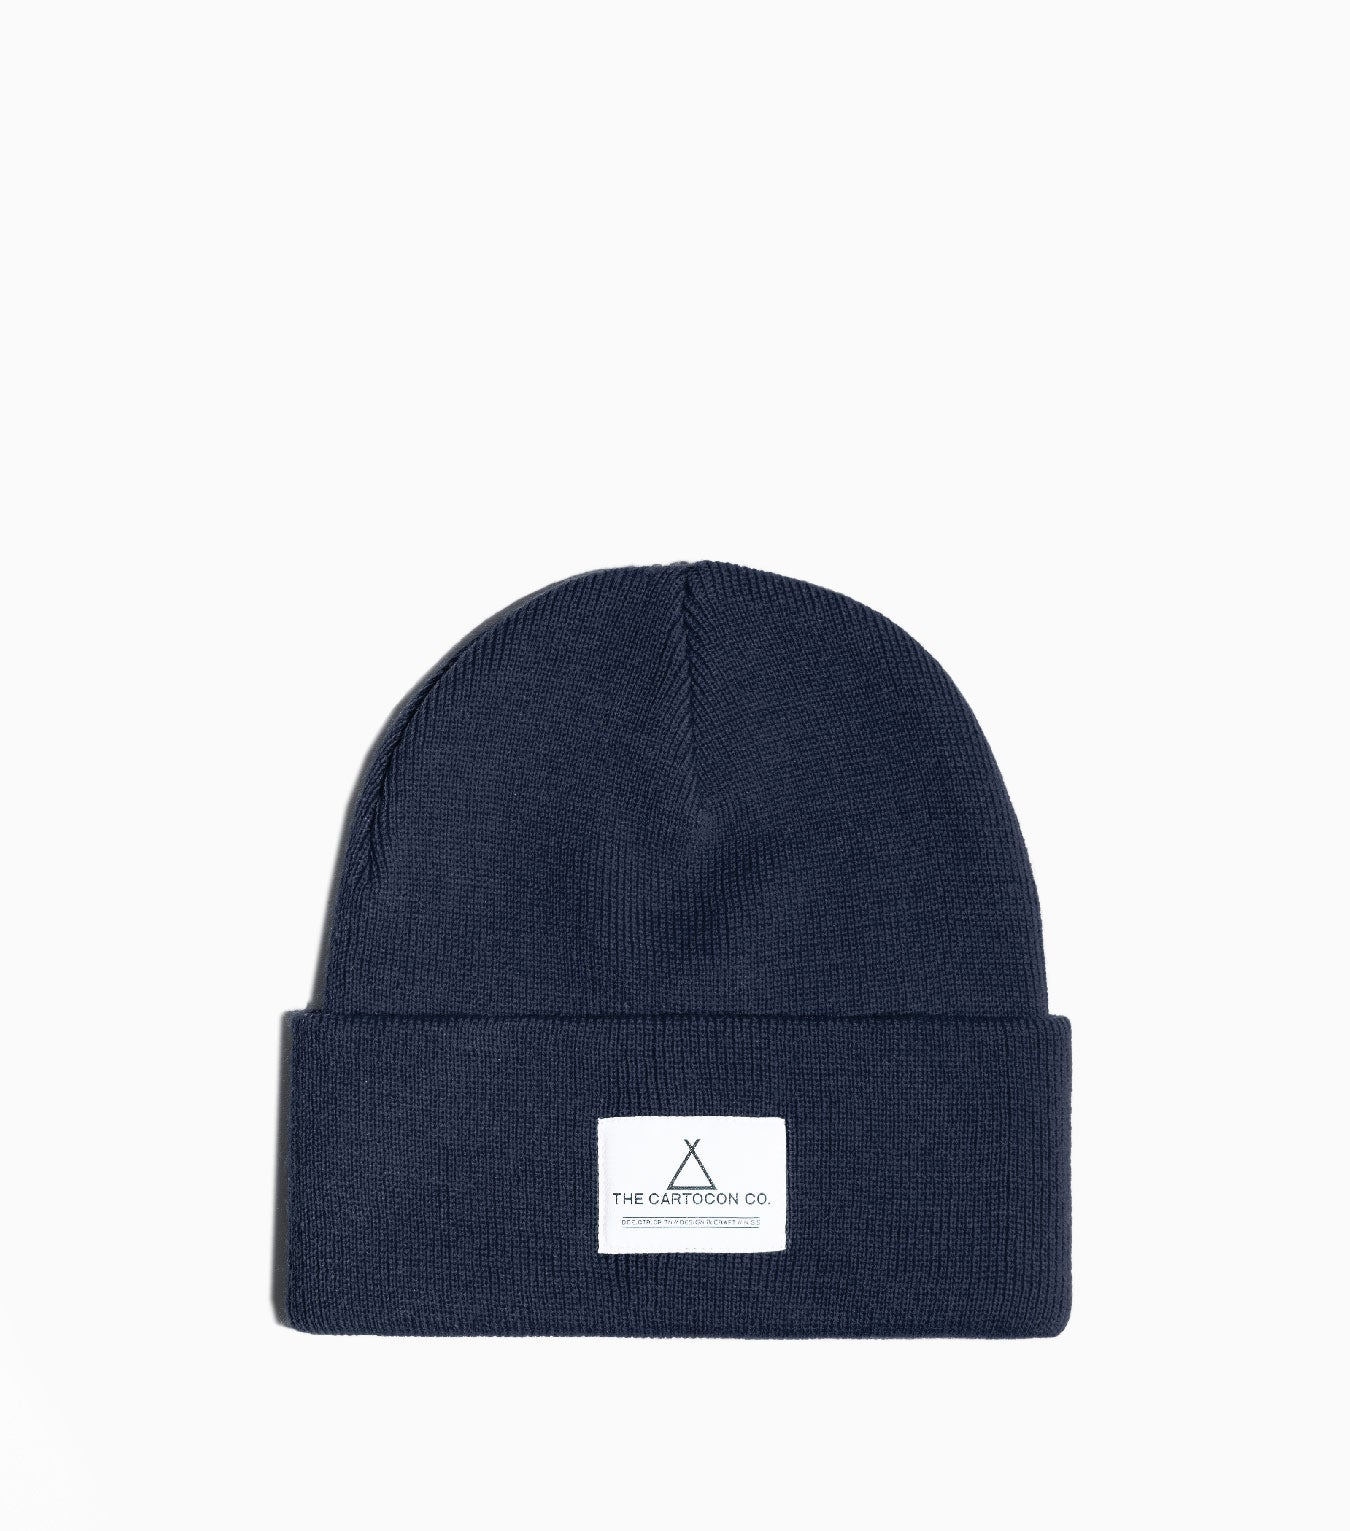 CARTOCON Watch Beanie – 282 C Navy Hat - CARTOCON